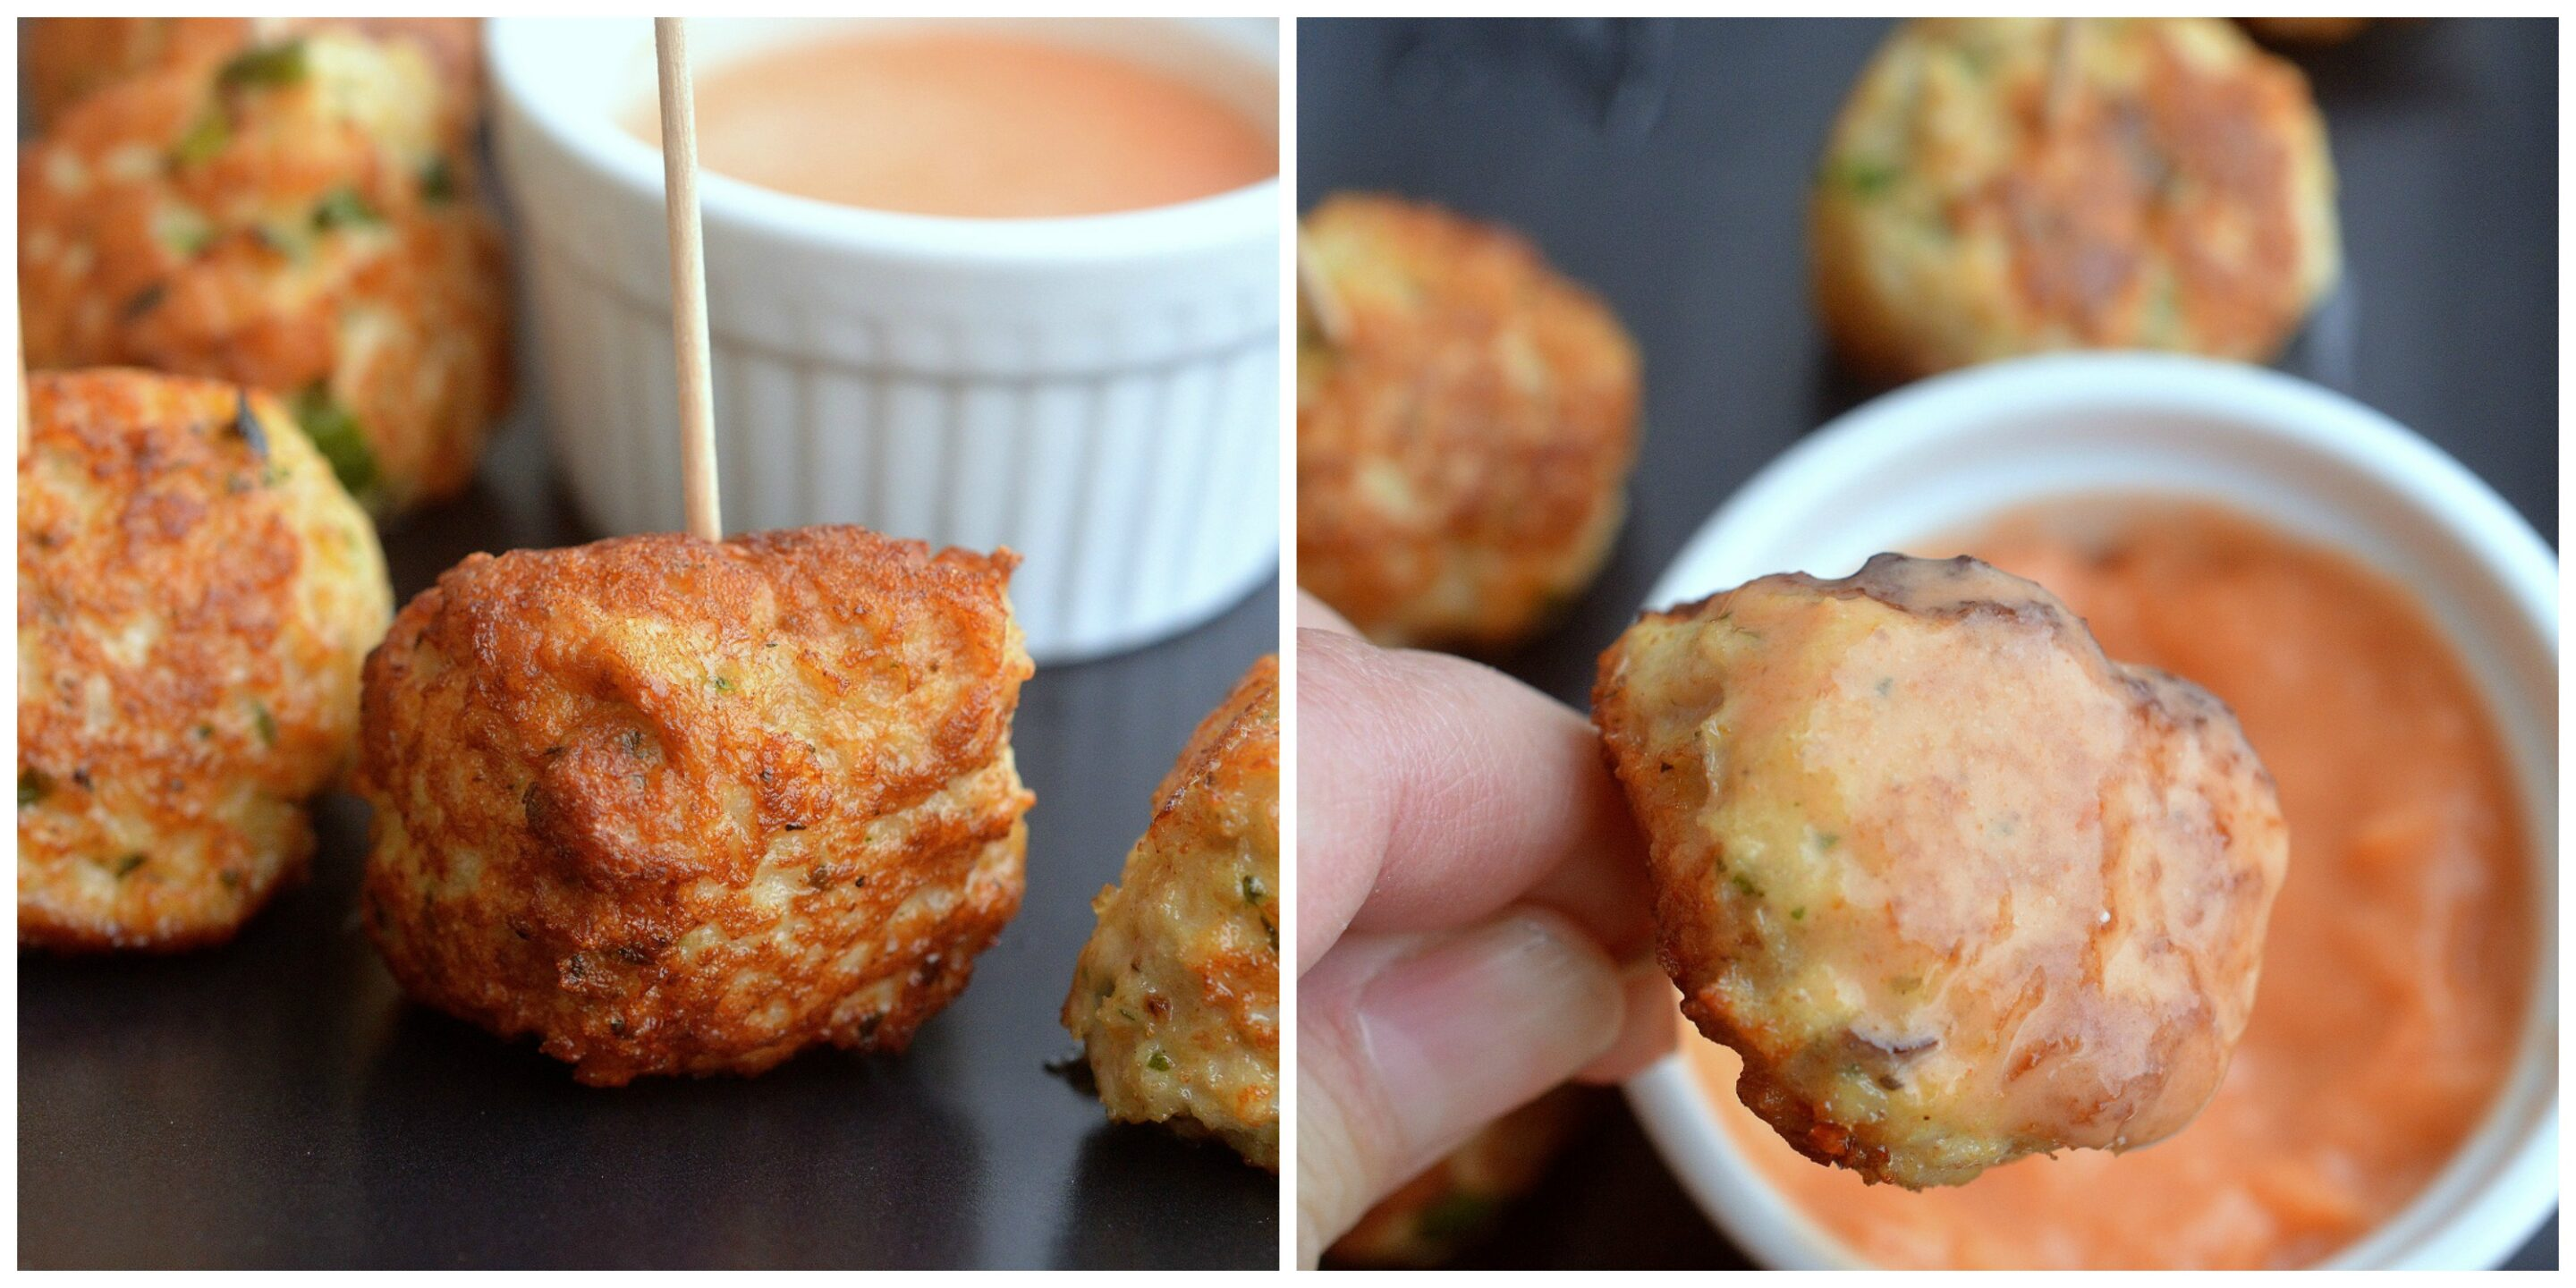 Tastes like a Chicken Nugget (but way healthier and full of flavor...dairy free)